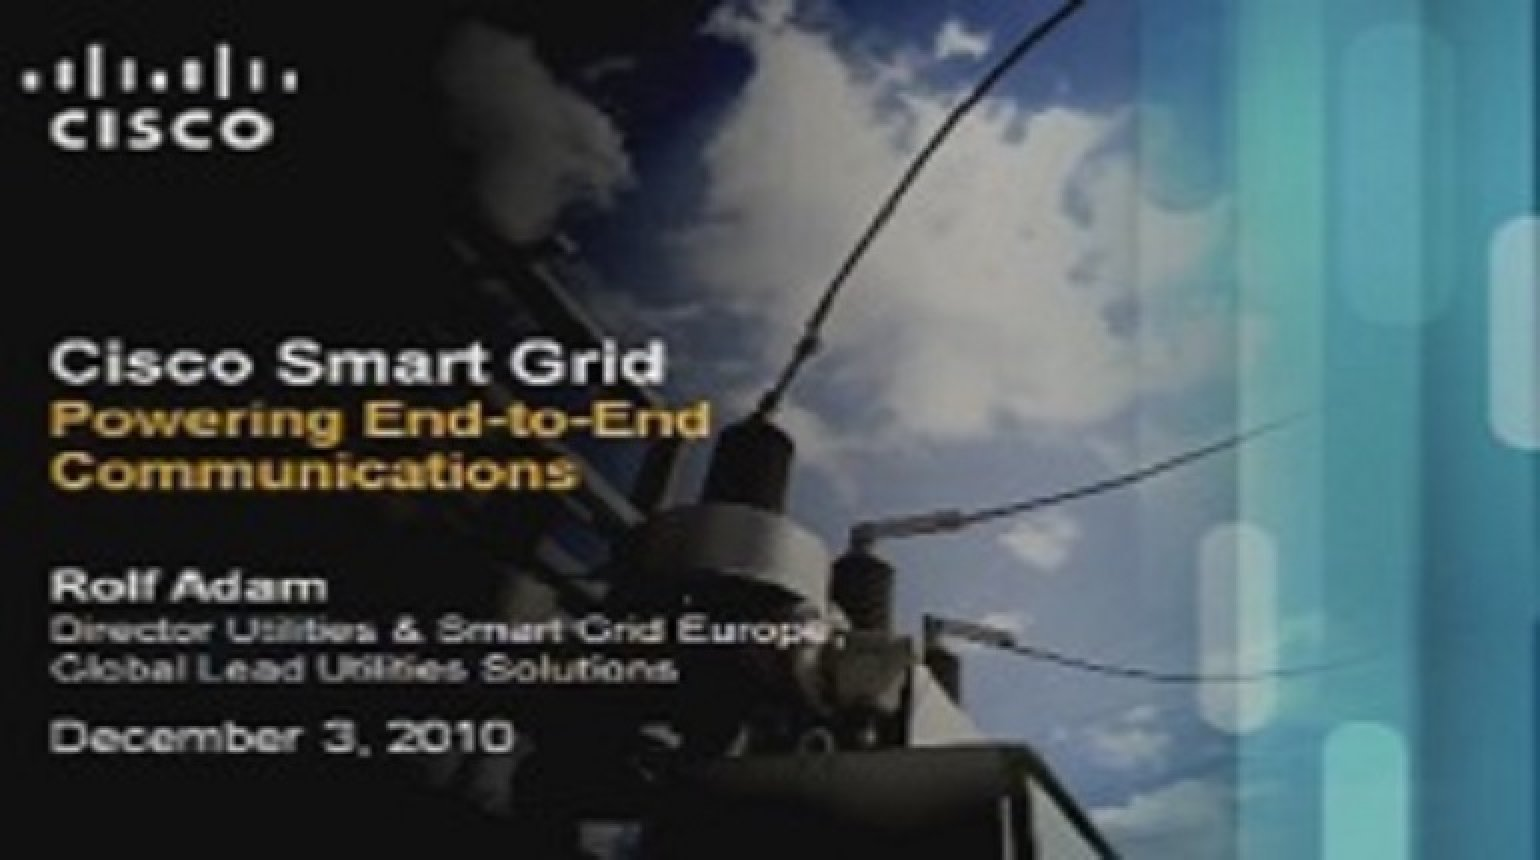 IEEE Smart Grid World Forum - Rolf Adam